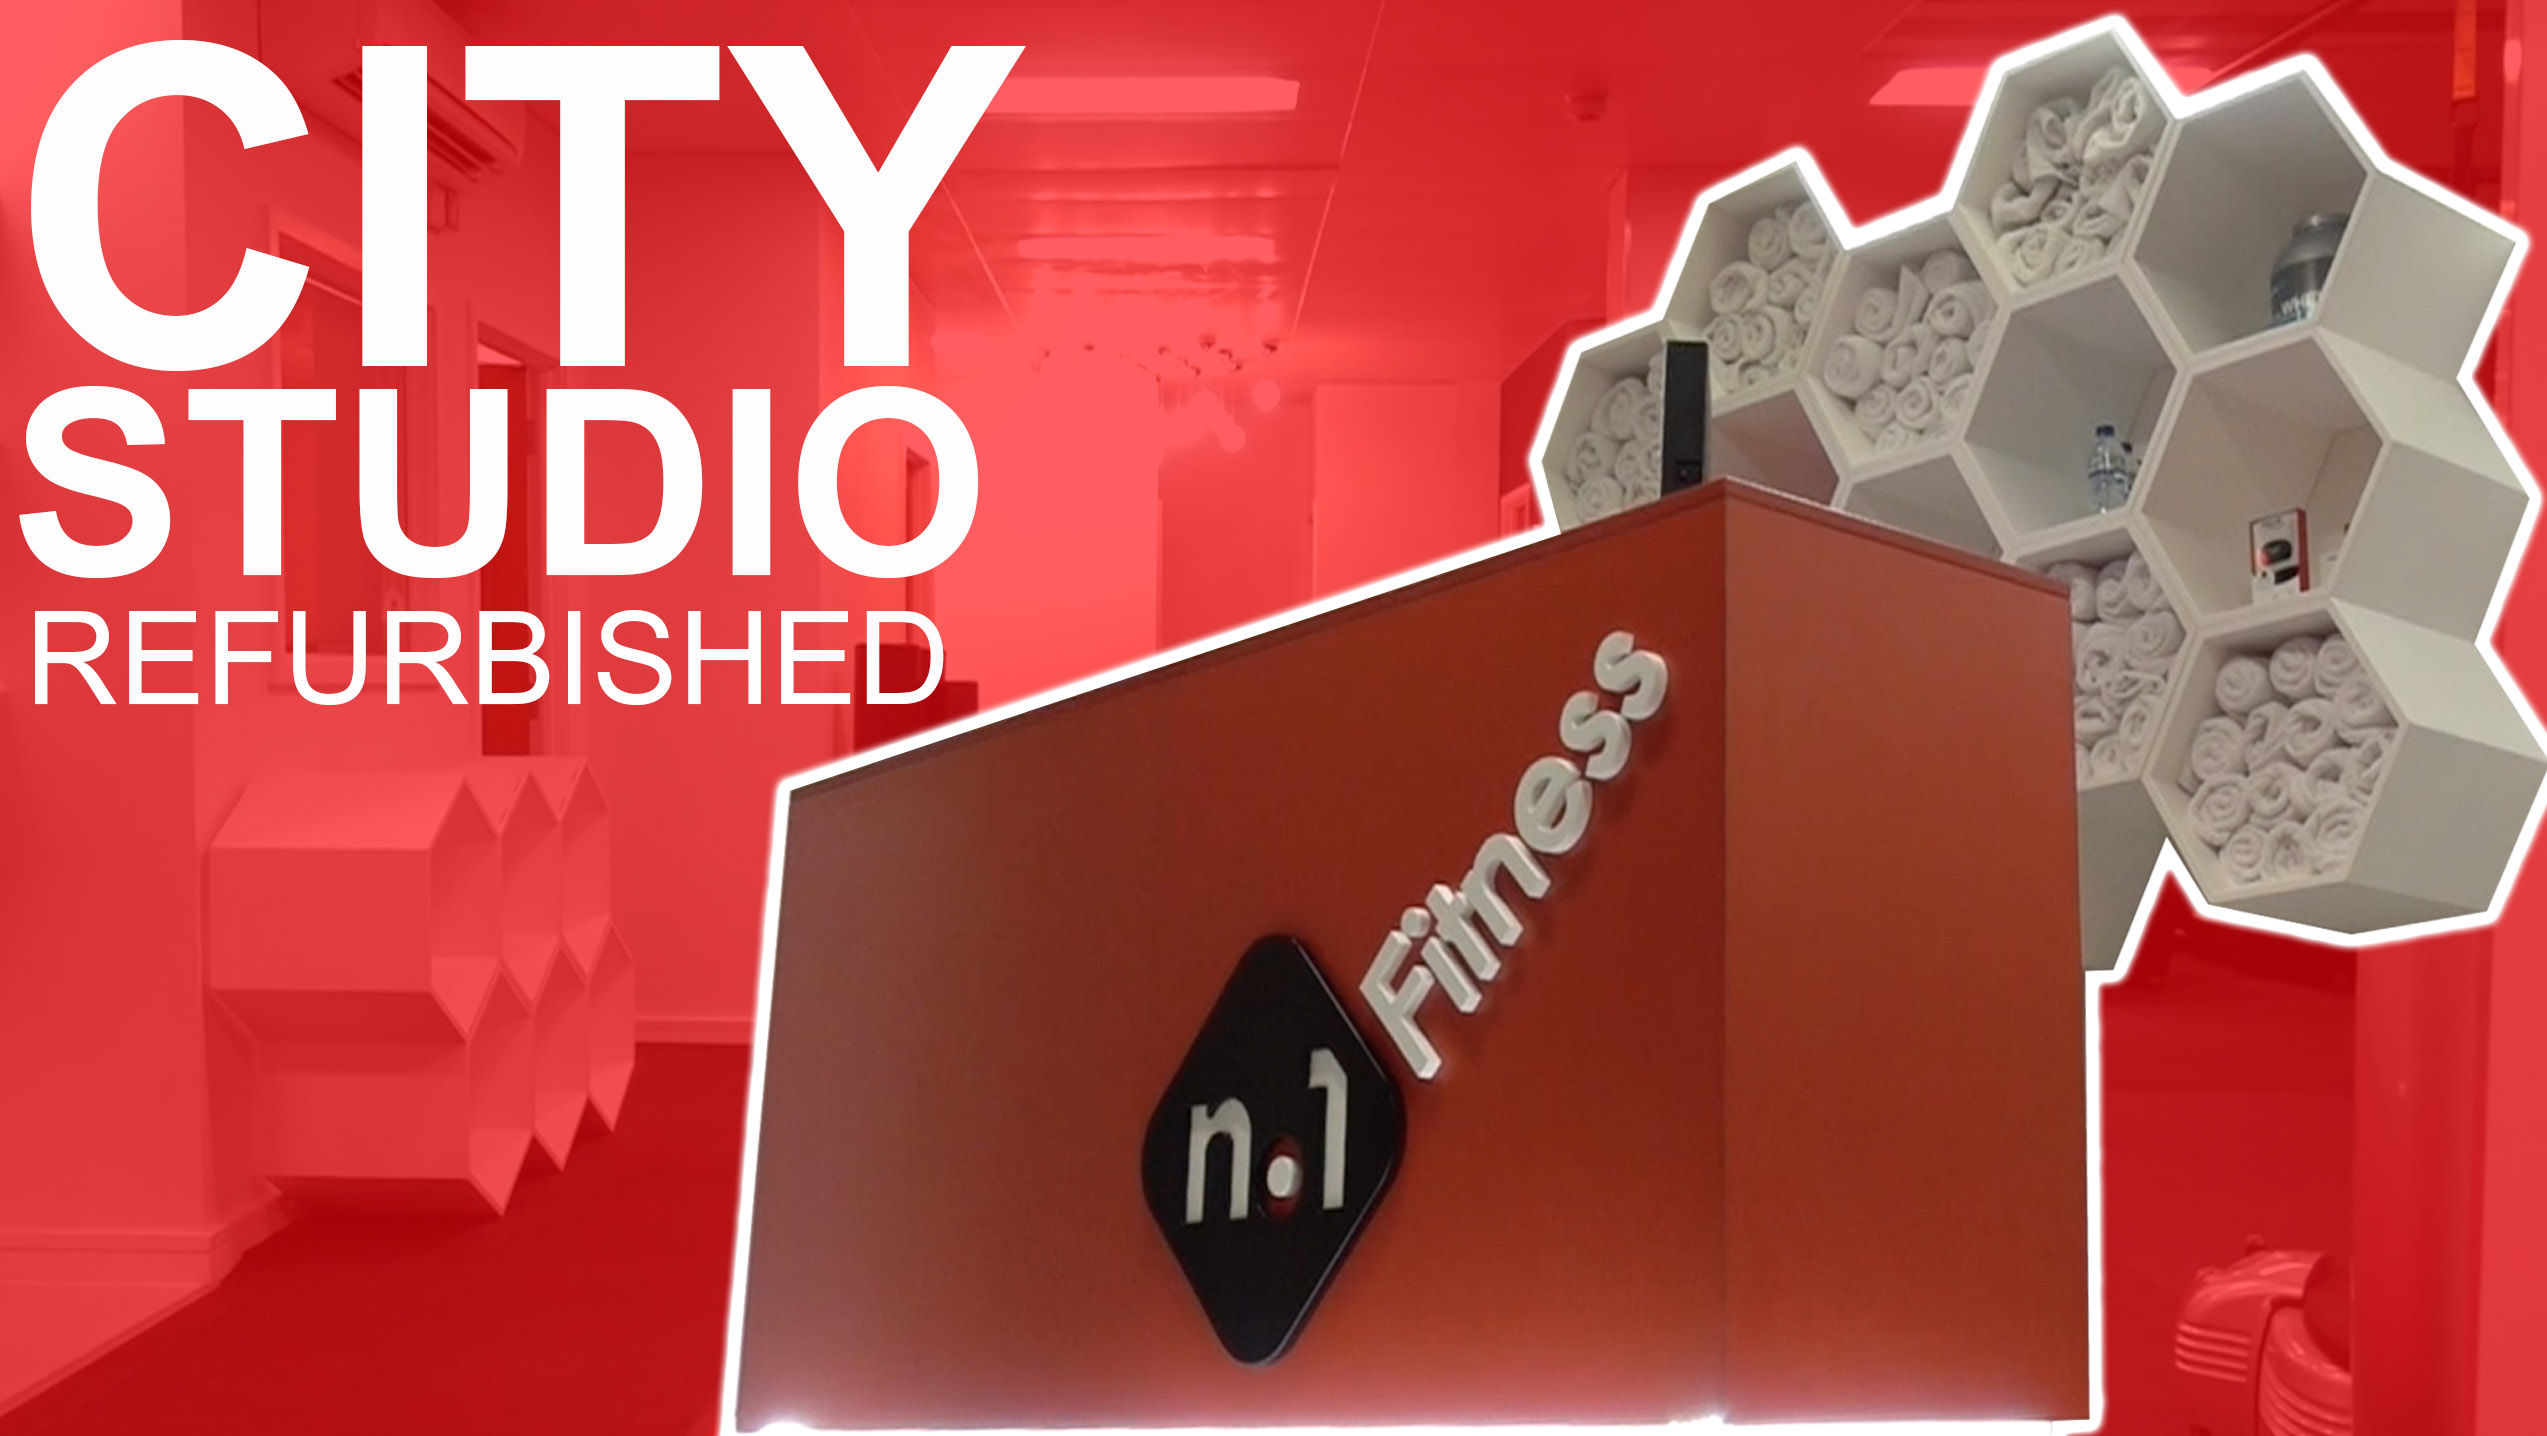 New No1 Fitness City Studio | No1 Fitness